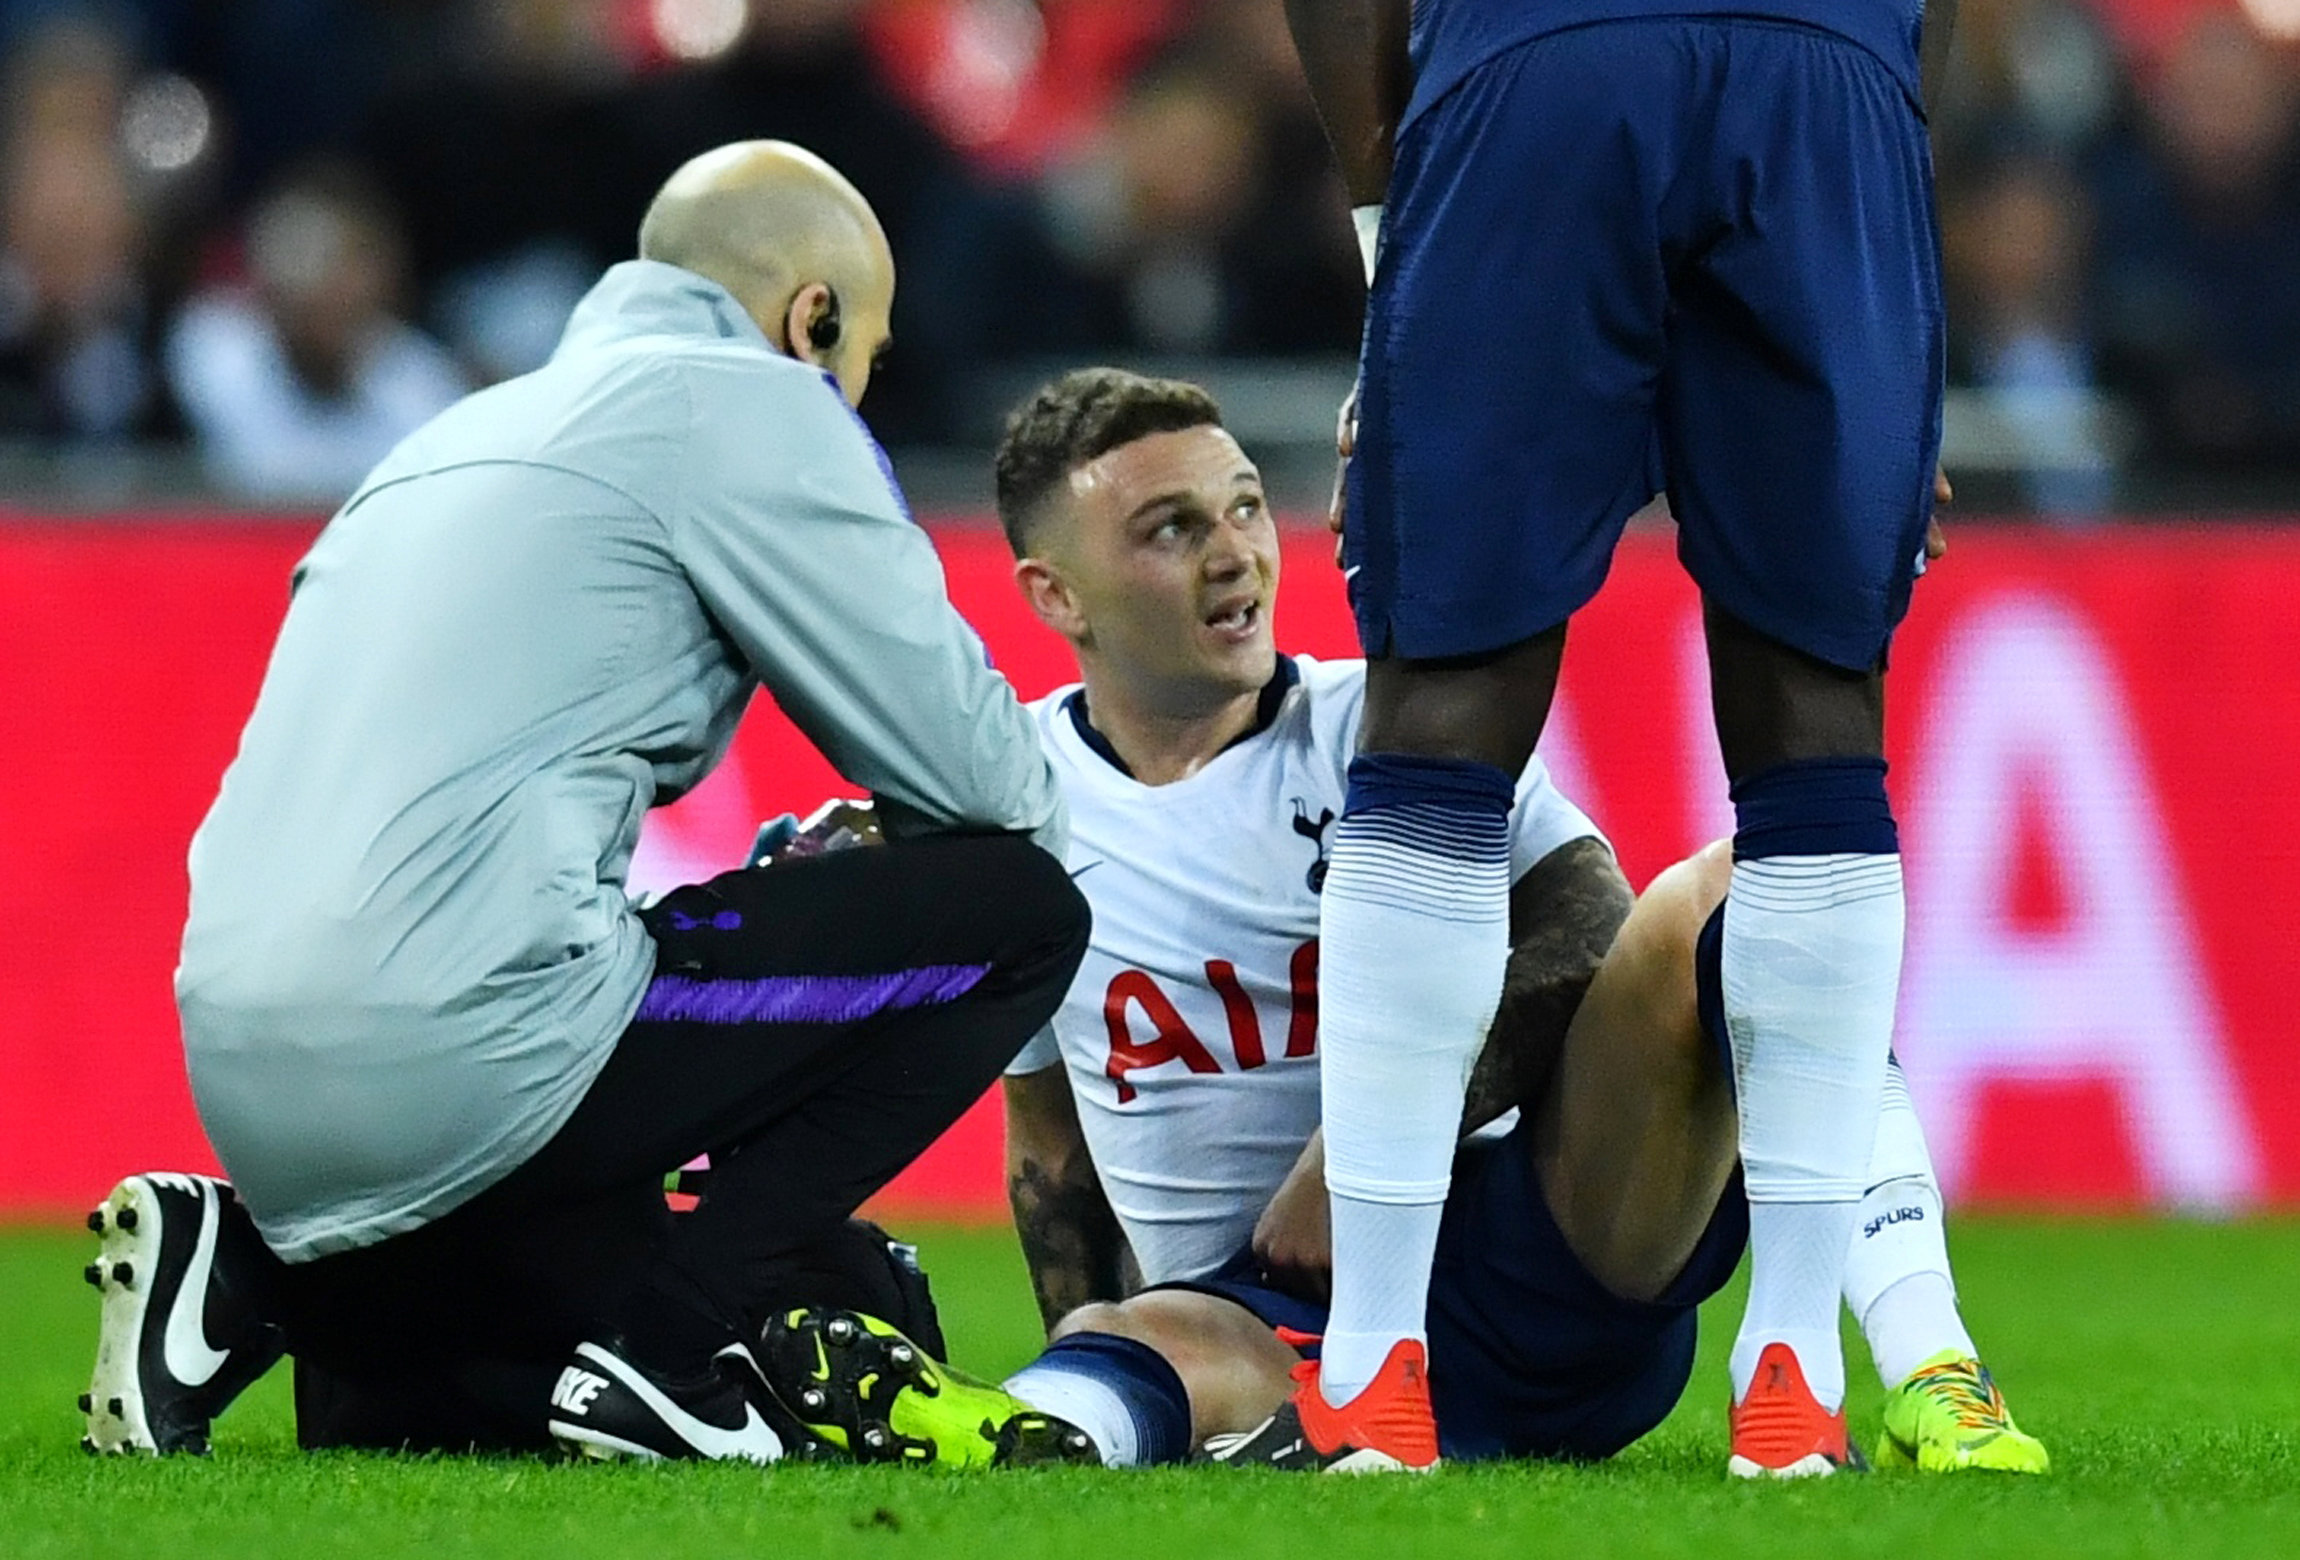 Kieran Trippier limped off injured on his return last night. Picture: Action Images